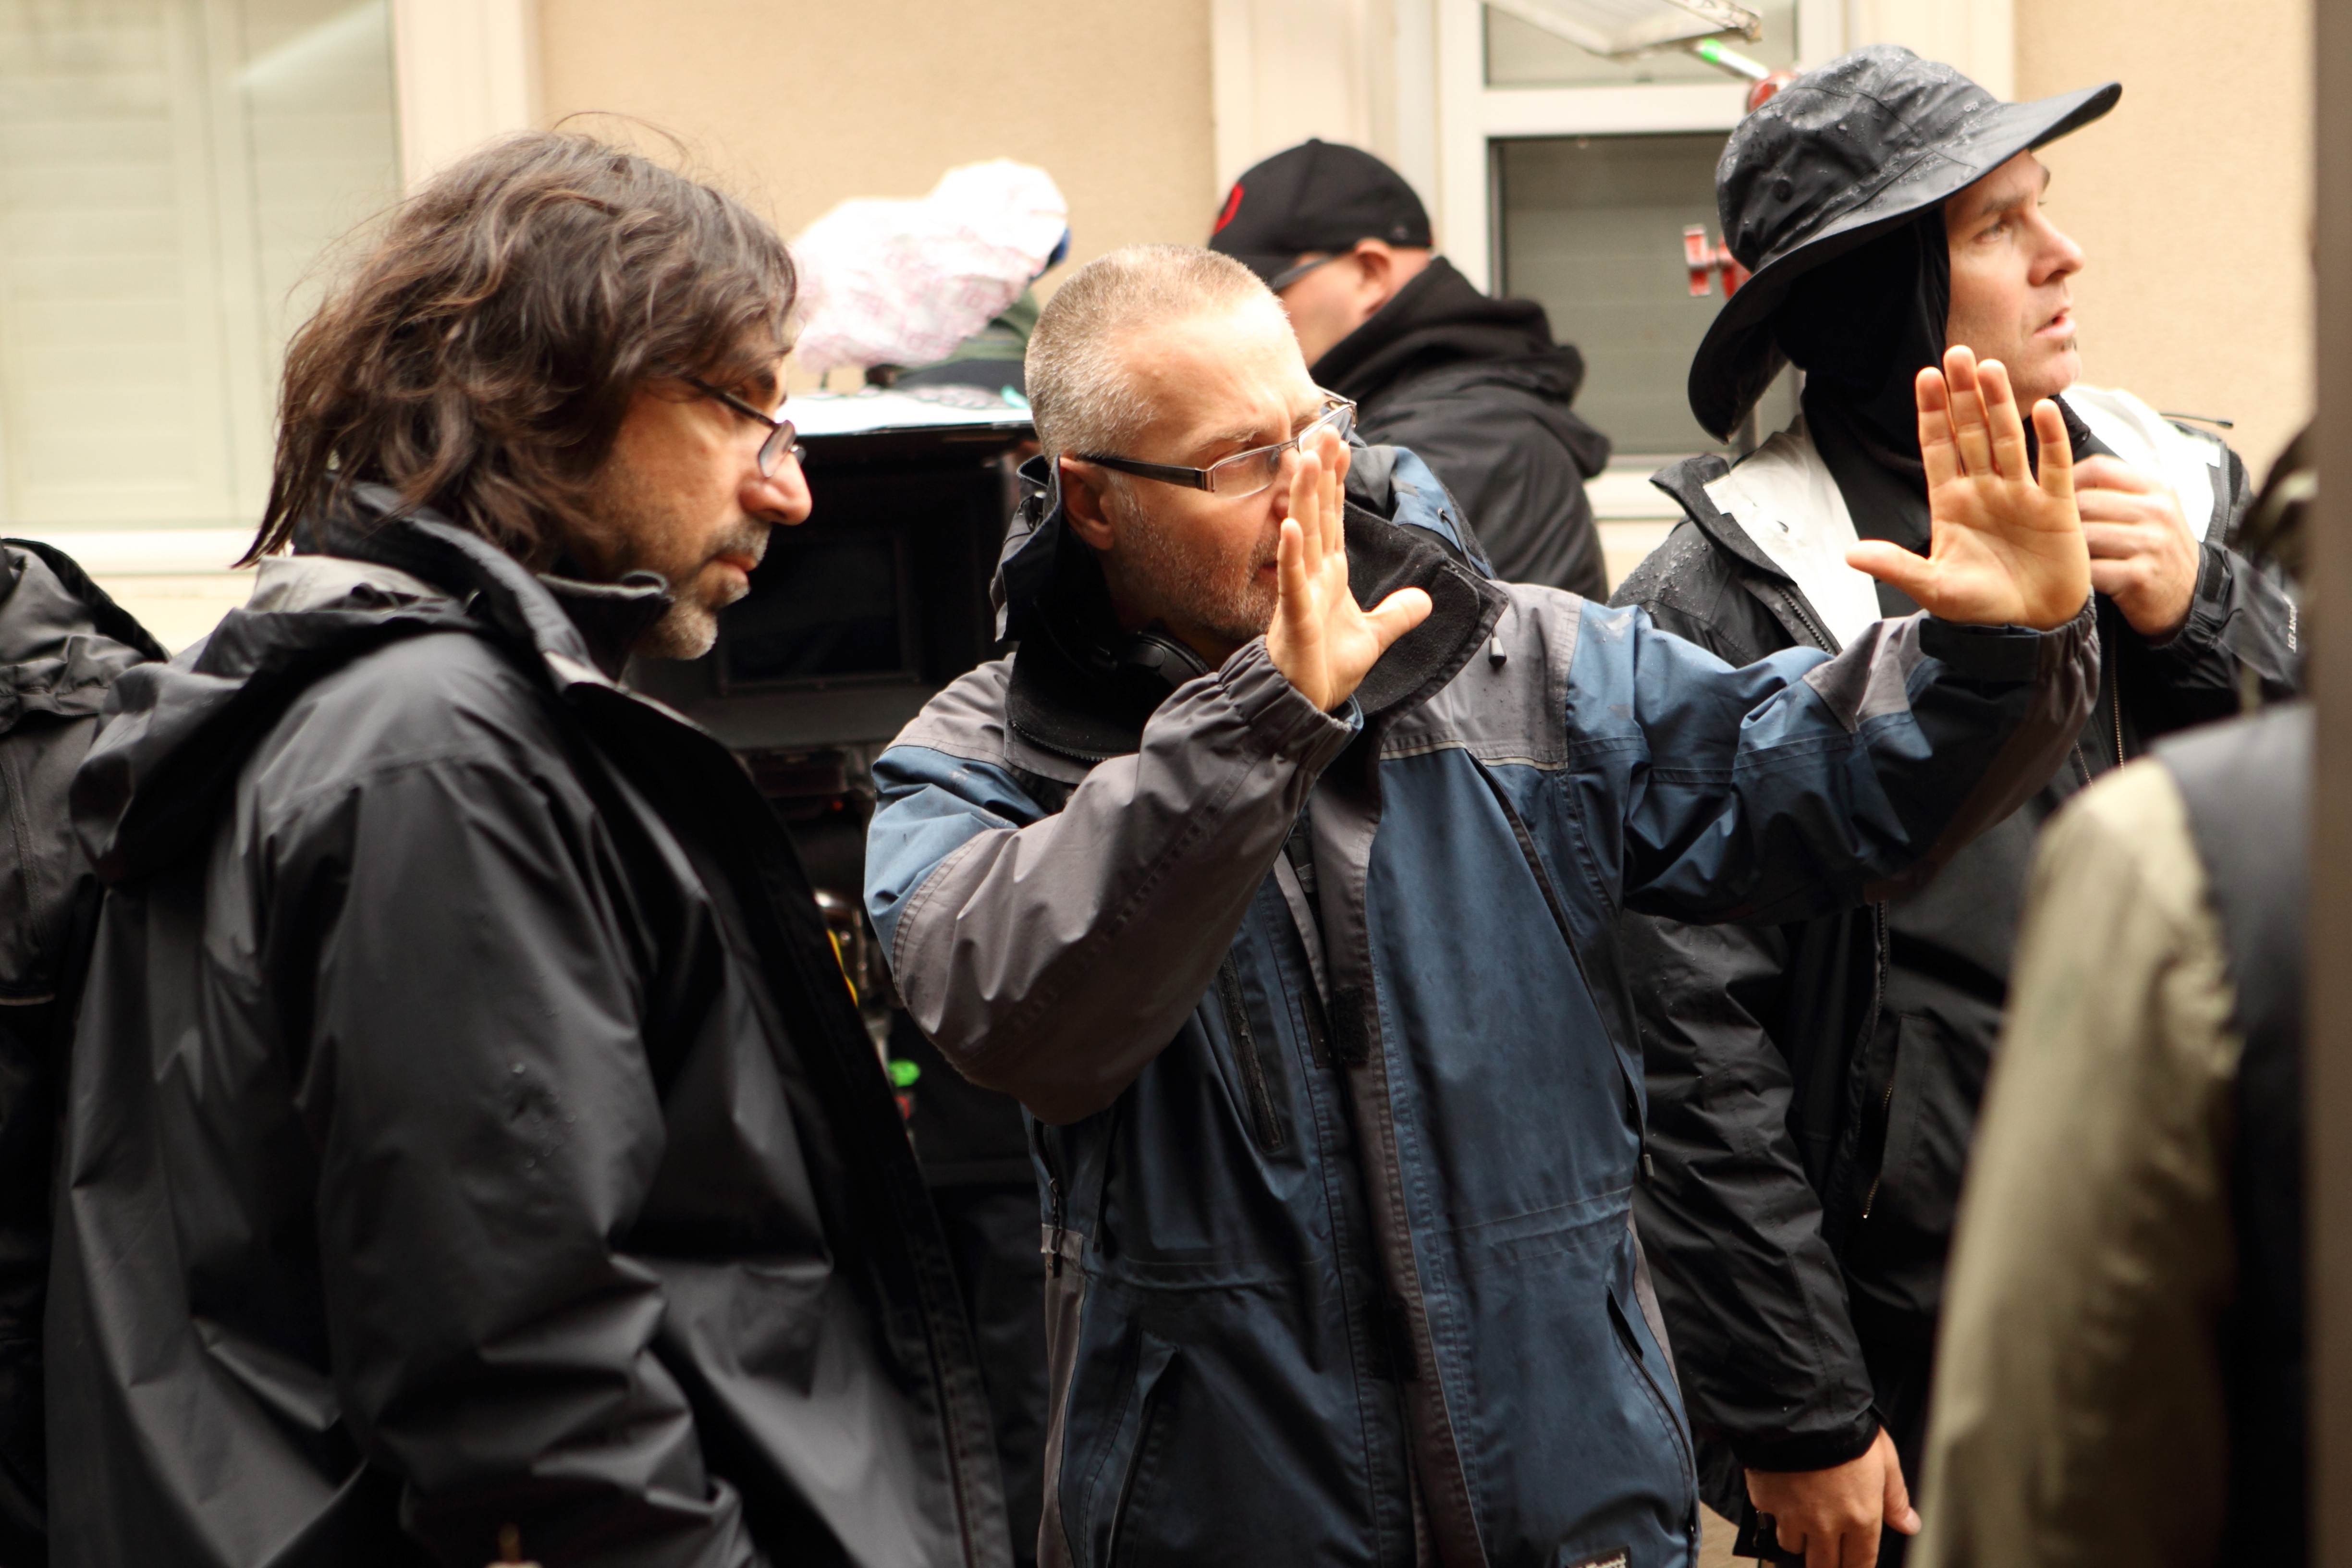 Cracked 109 - Lining up a shot with cinematographer Naroayr Kasper 2012